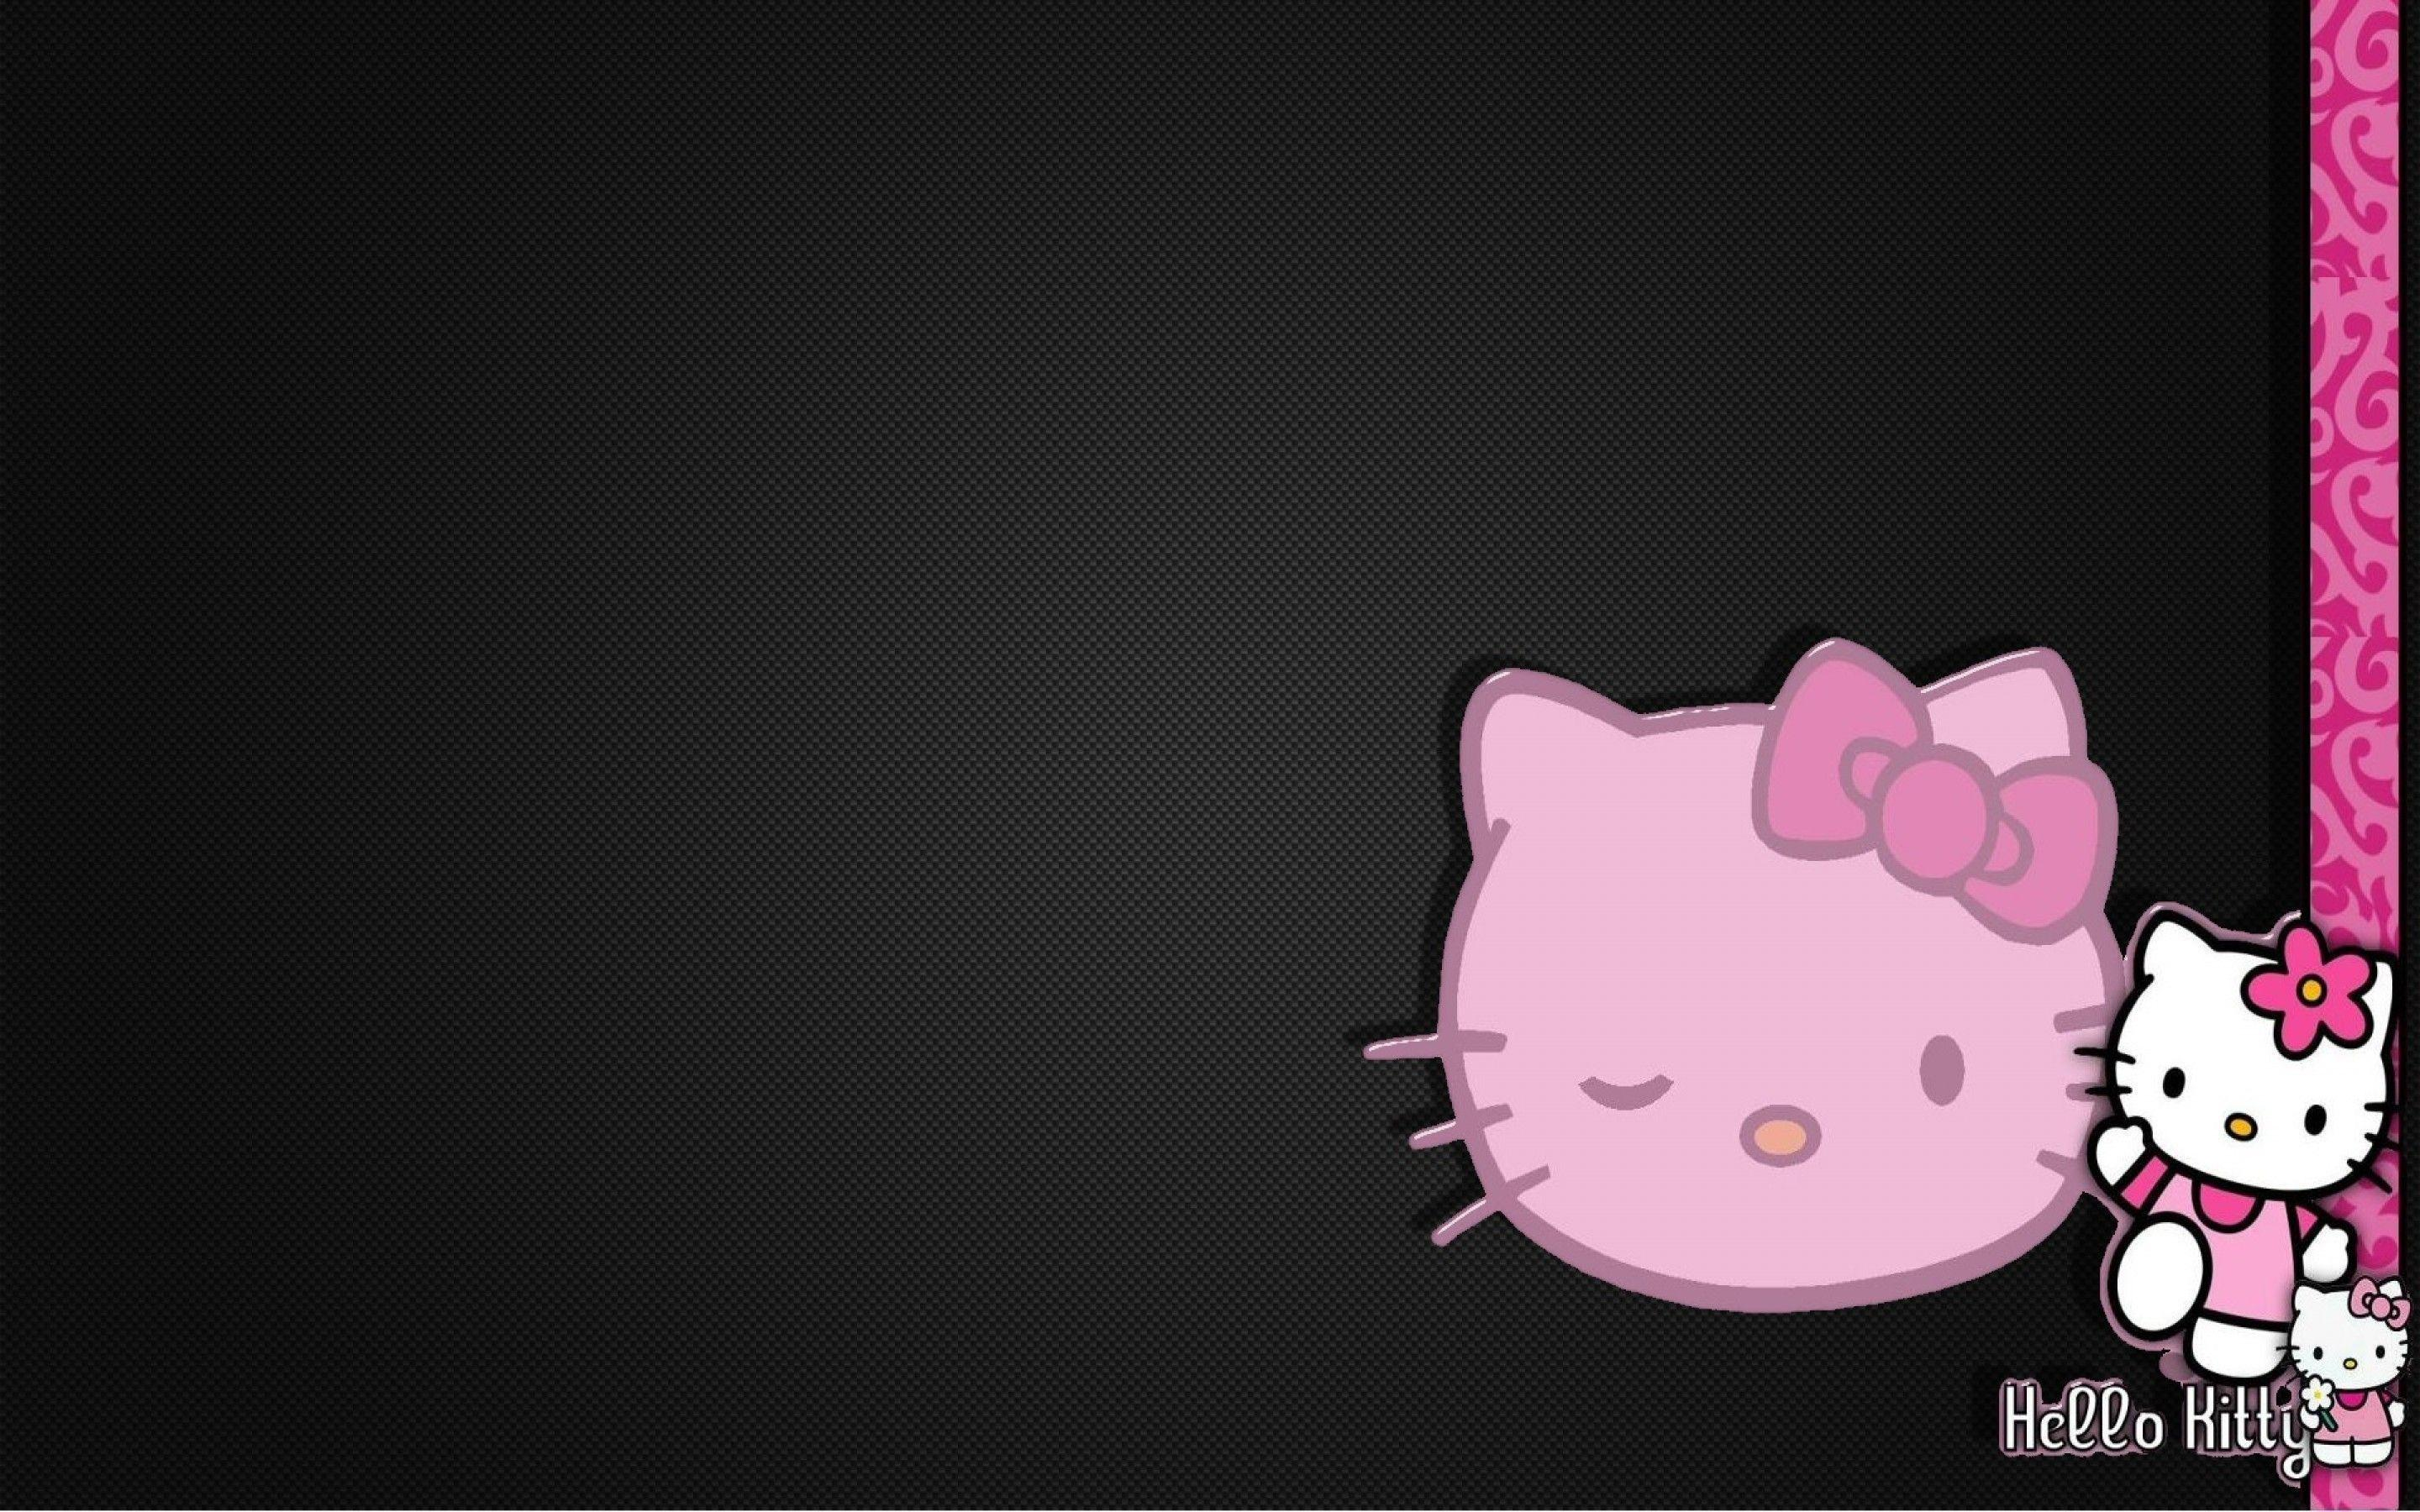 Hello kitty wallpapers for desktop